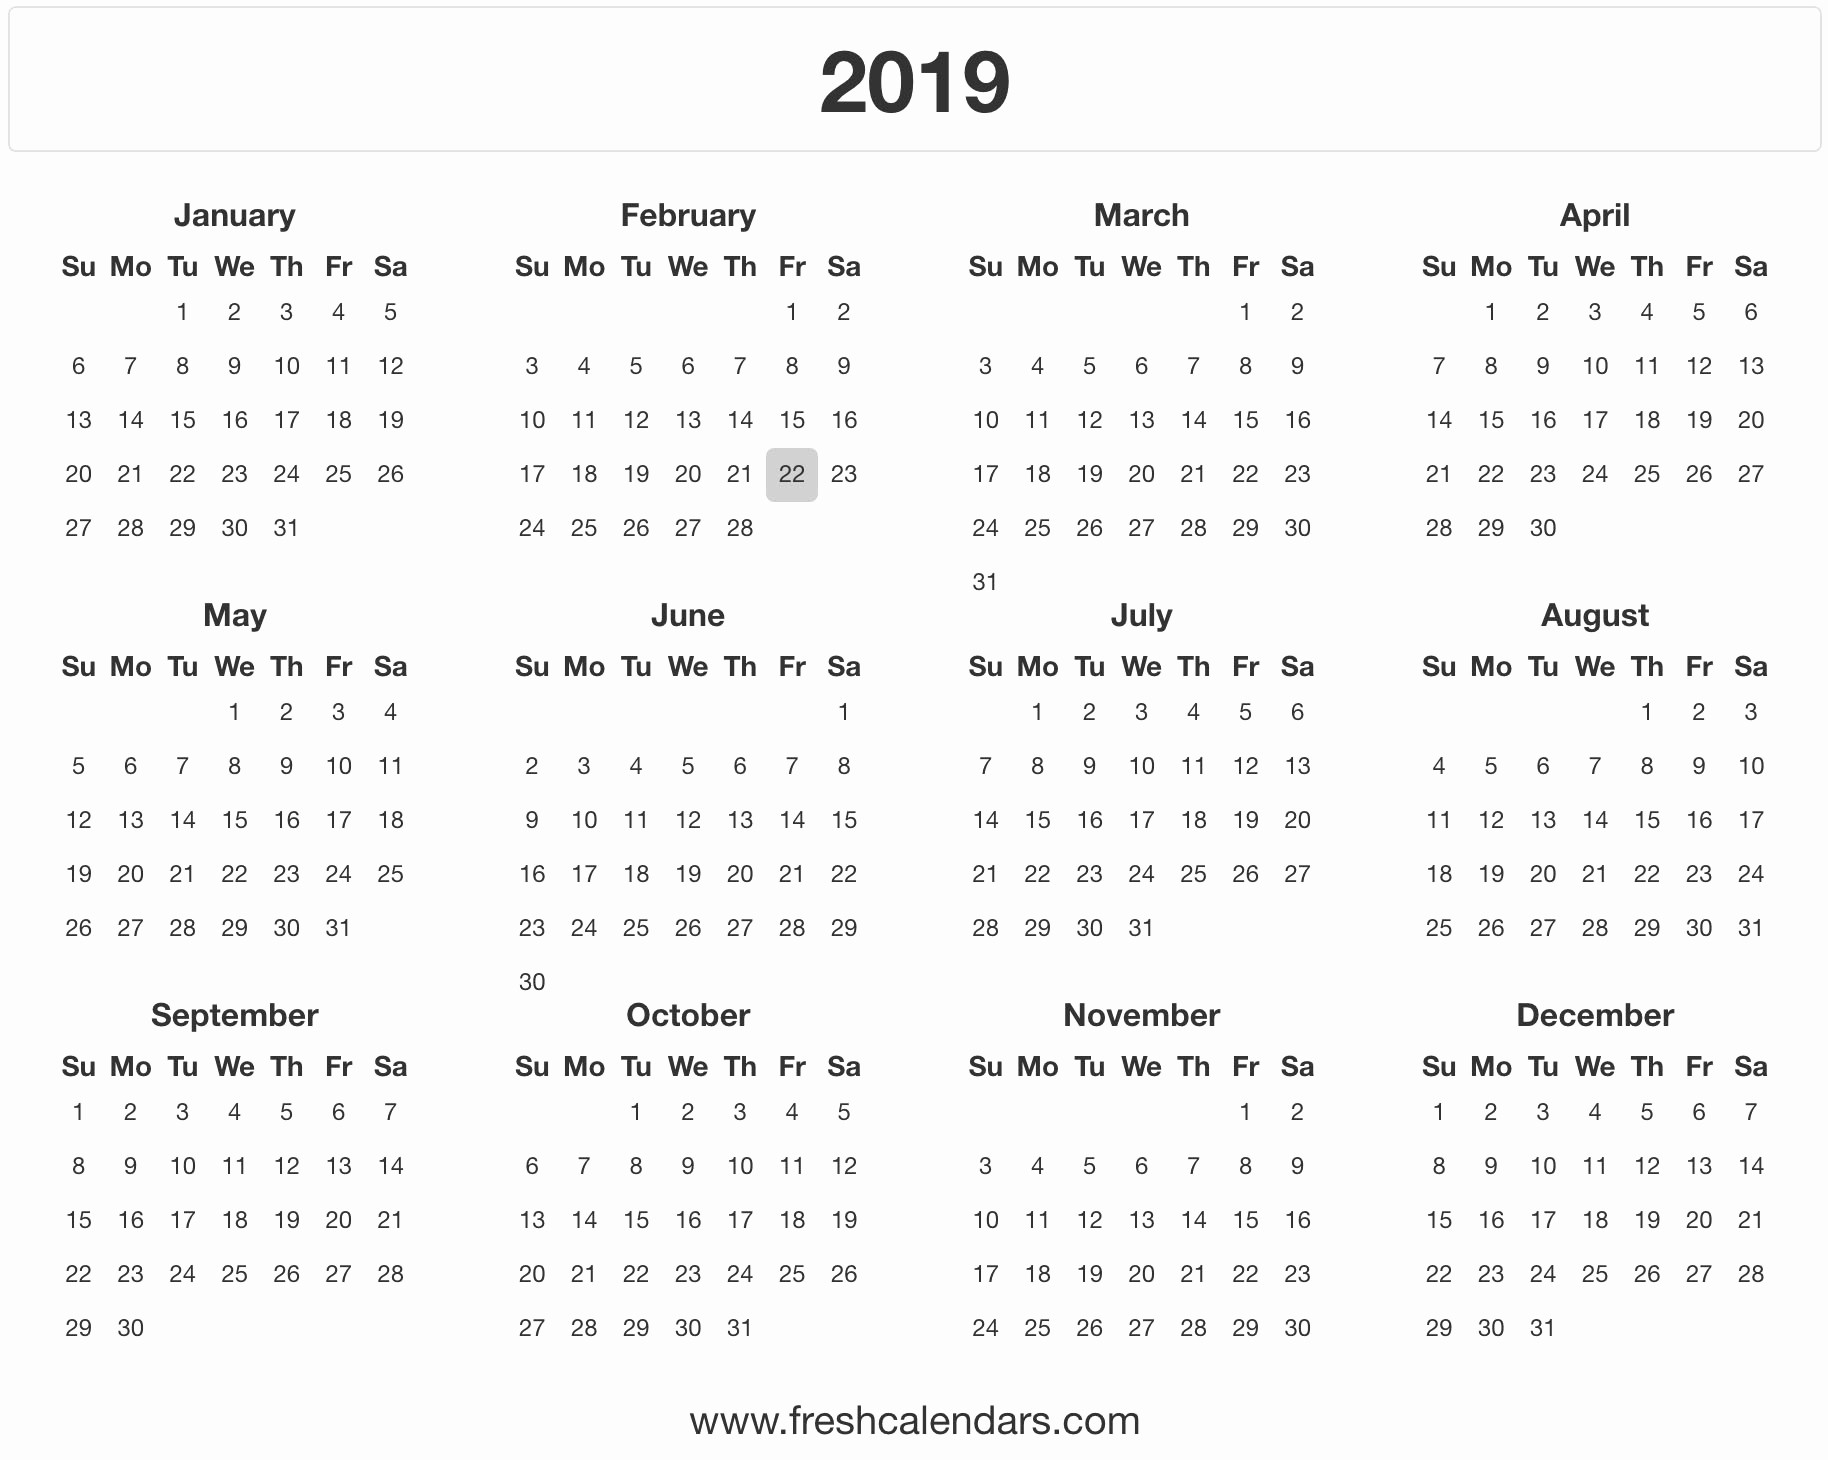 Free Printable 2019 Yearly Calendar New 2019 Calendar